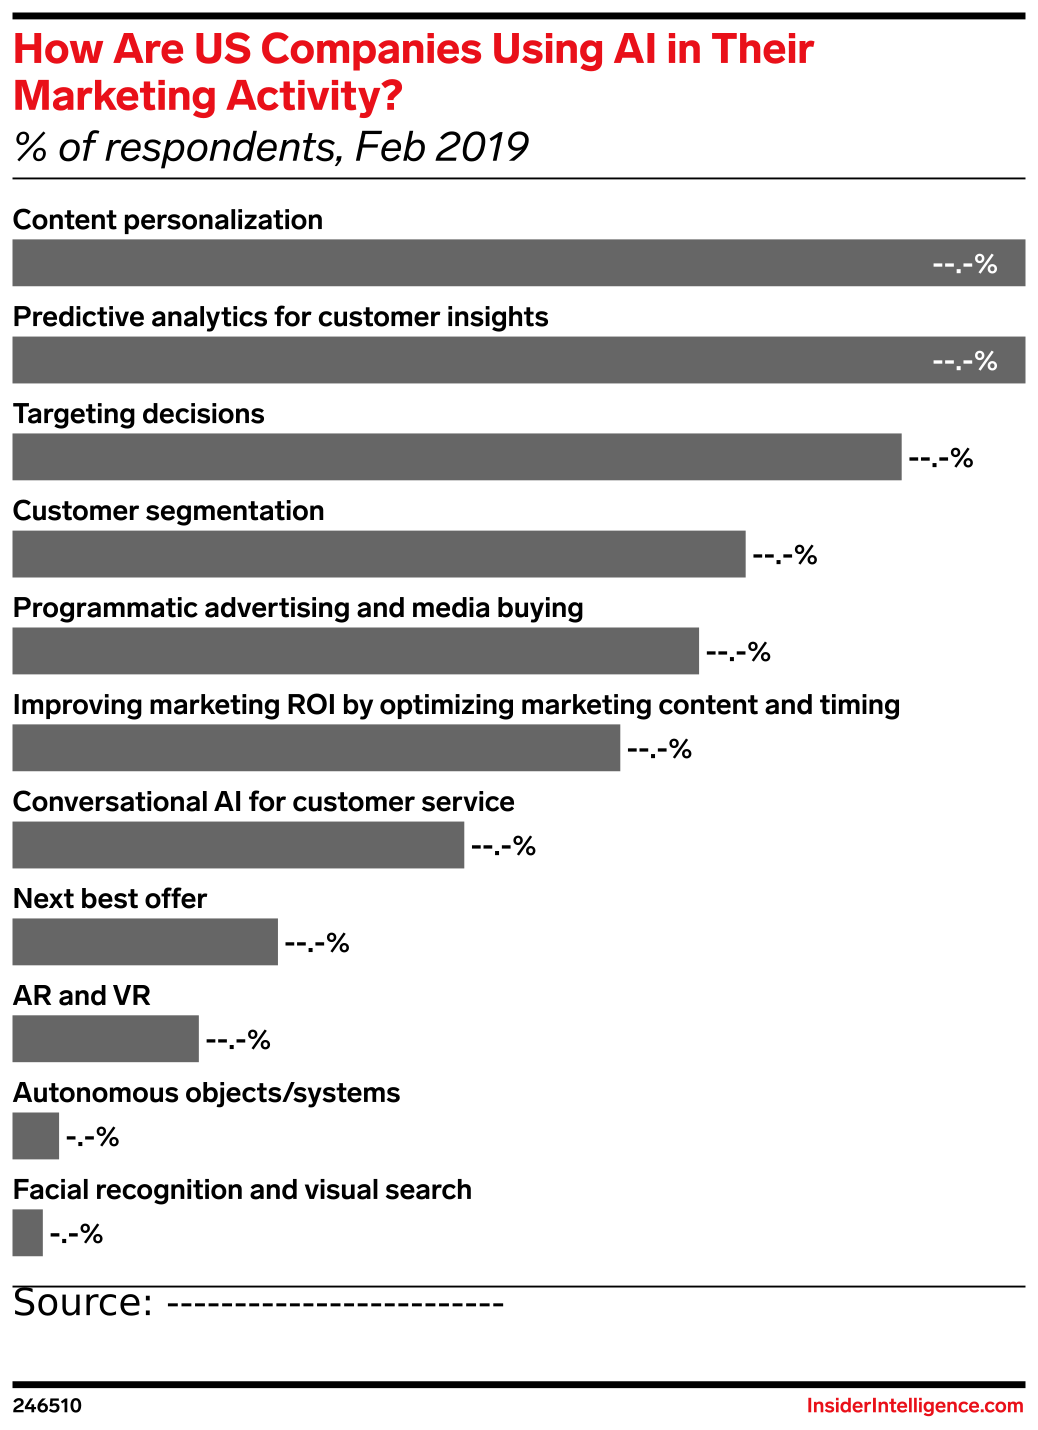 How Are US Companies Using AI in Their Marketing Activity? (% of respondents, Feb 2019)